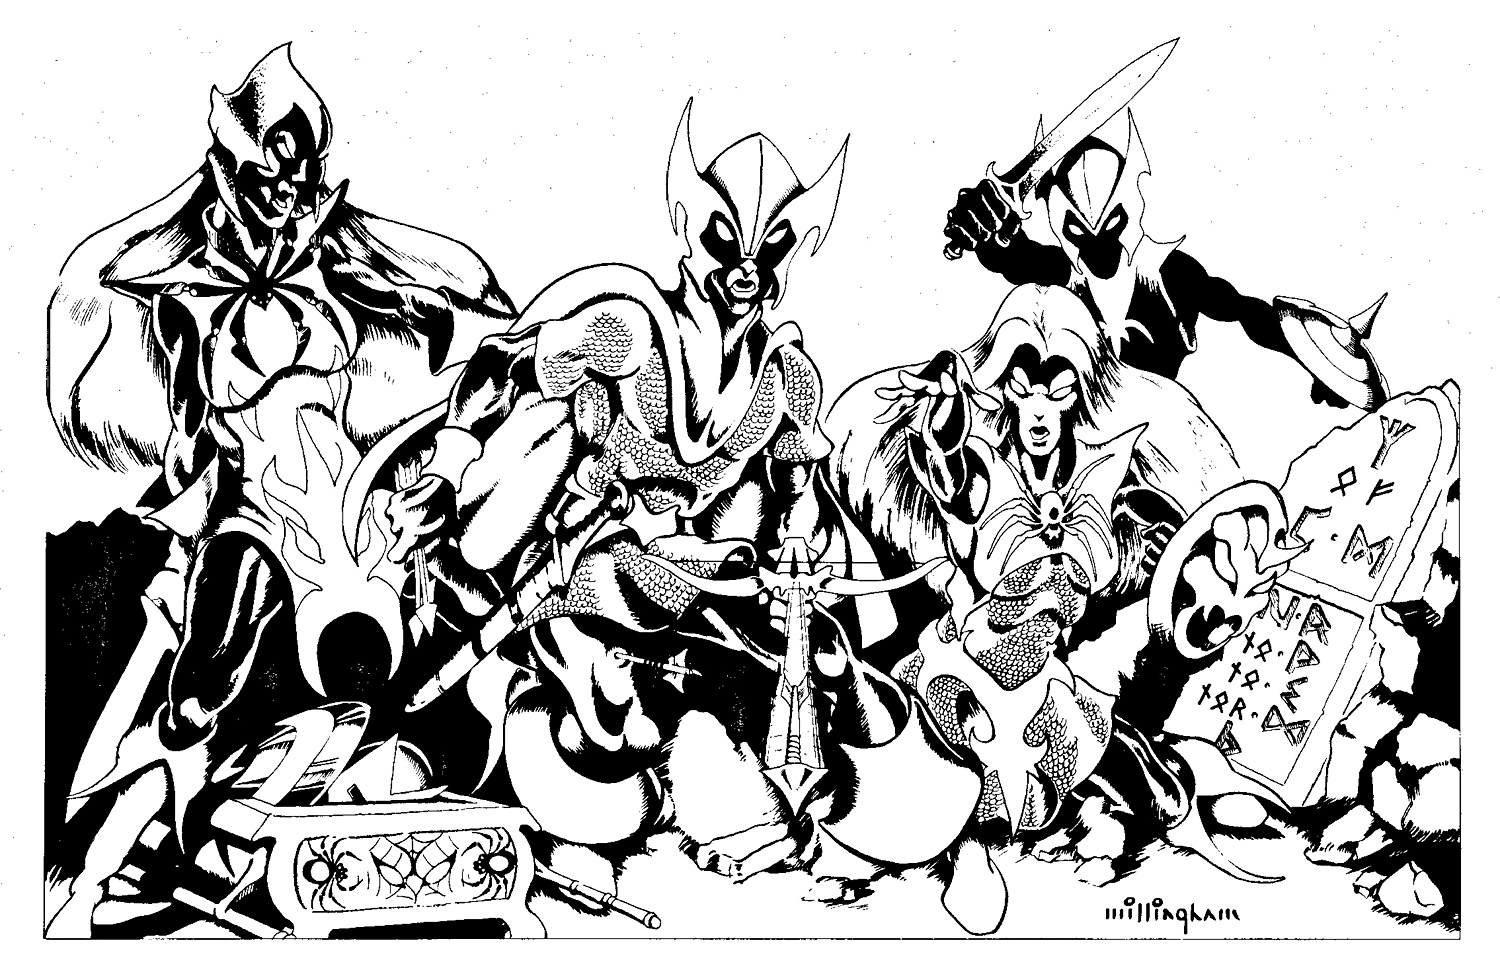 dark elf drow Gruppo di agguerriti elfi scuri - by Bill Willingham TSR - Adventure collection, Descent into the Depths of the Earth (1981-12) © Wizards of the Coast & Hasbro